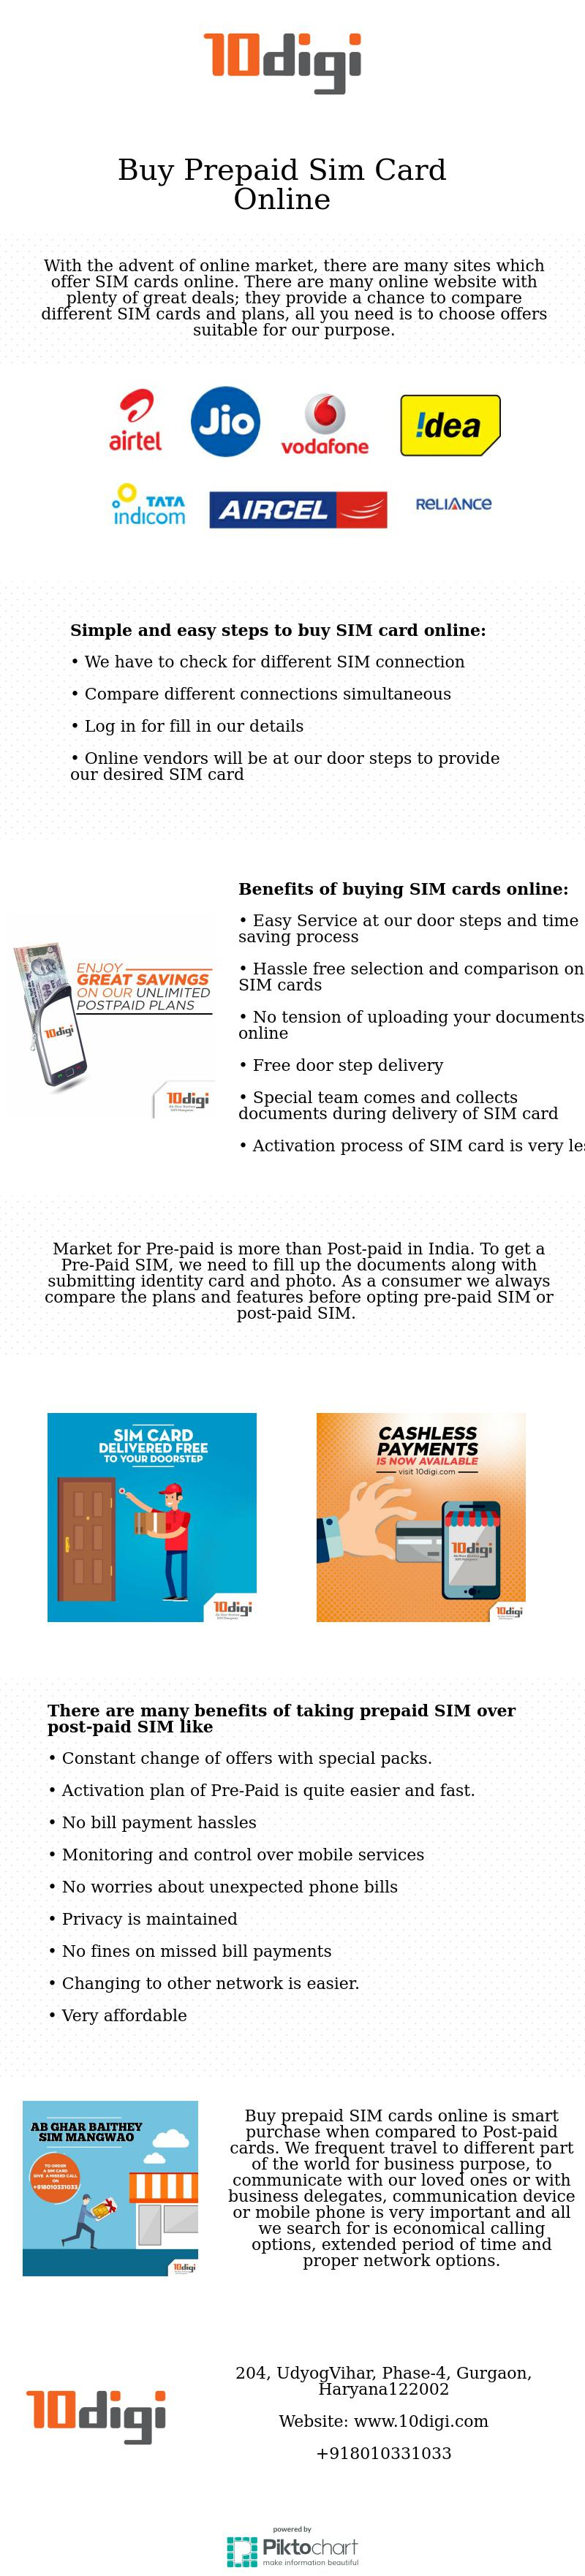 prepaid card connect phone number